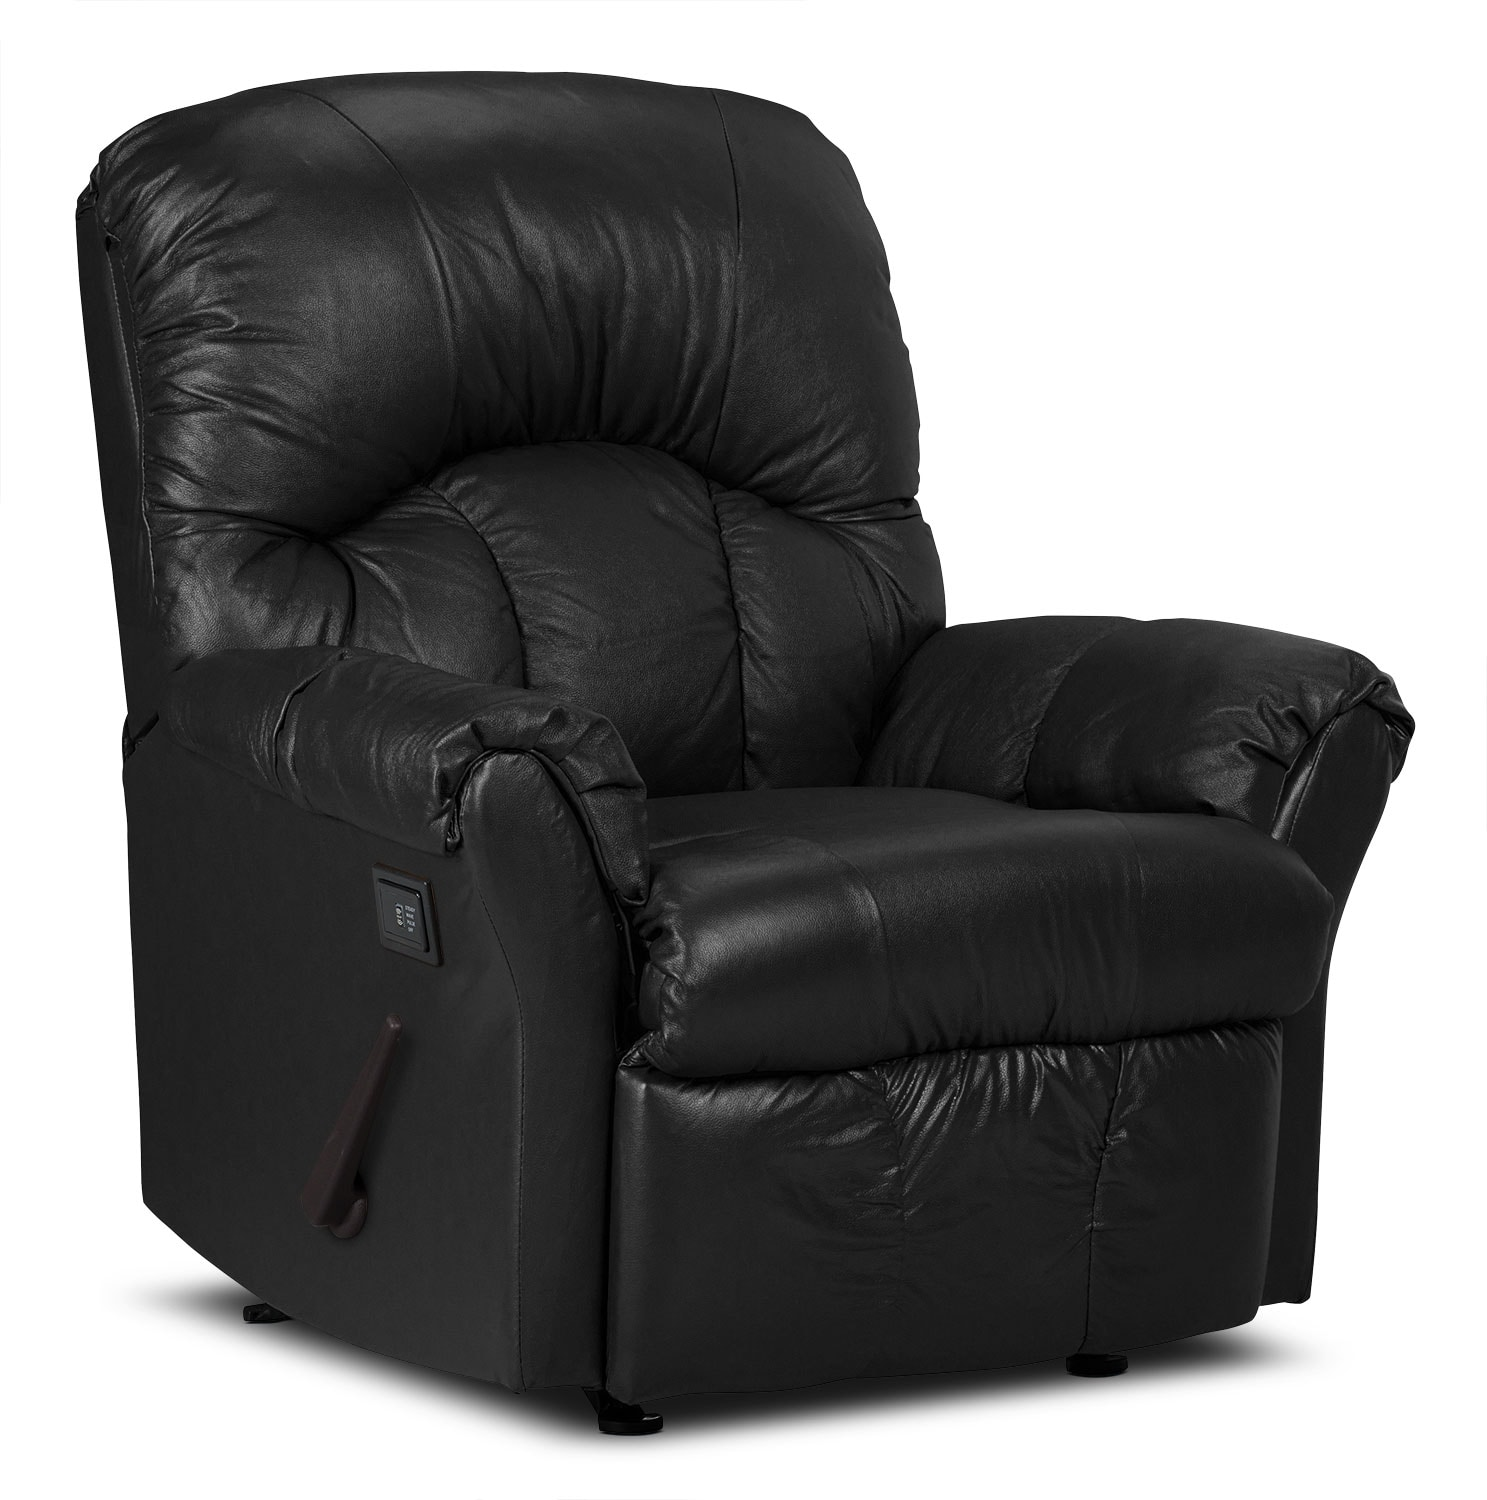 Real Leather Recliner Chairs Designed2b Recliner 6734 Genuine Leather Massage Chair